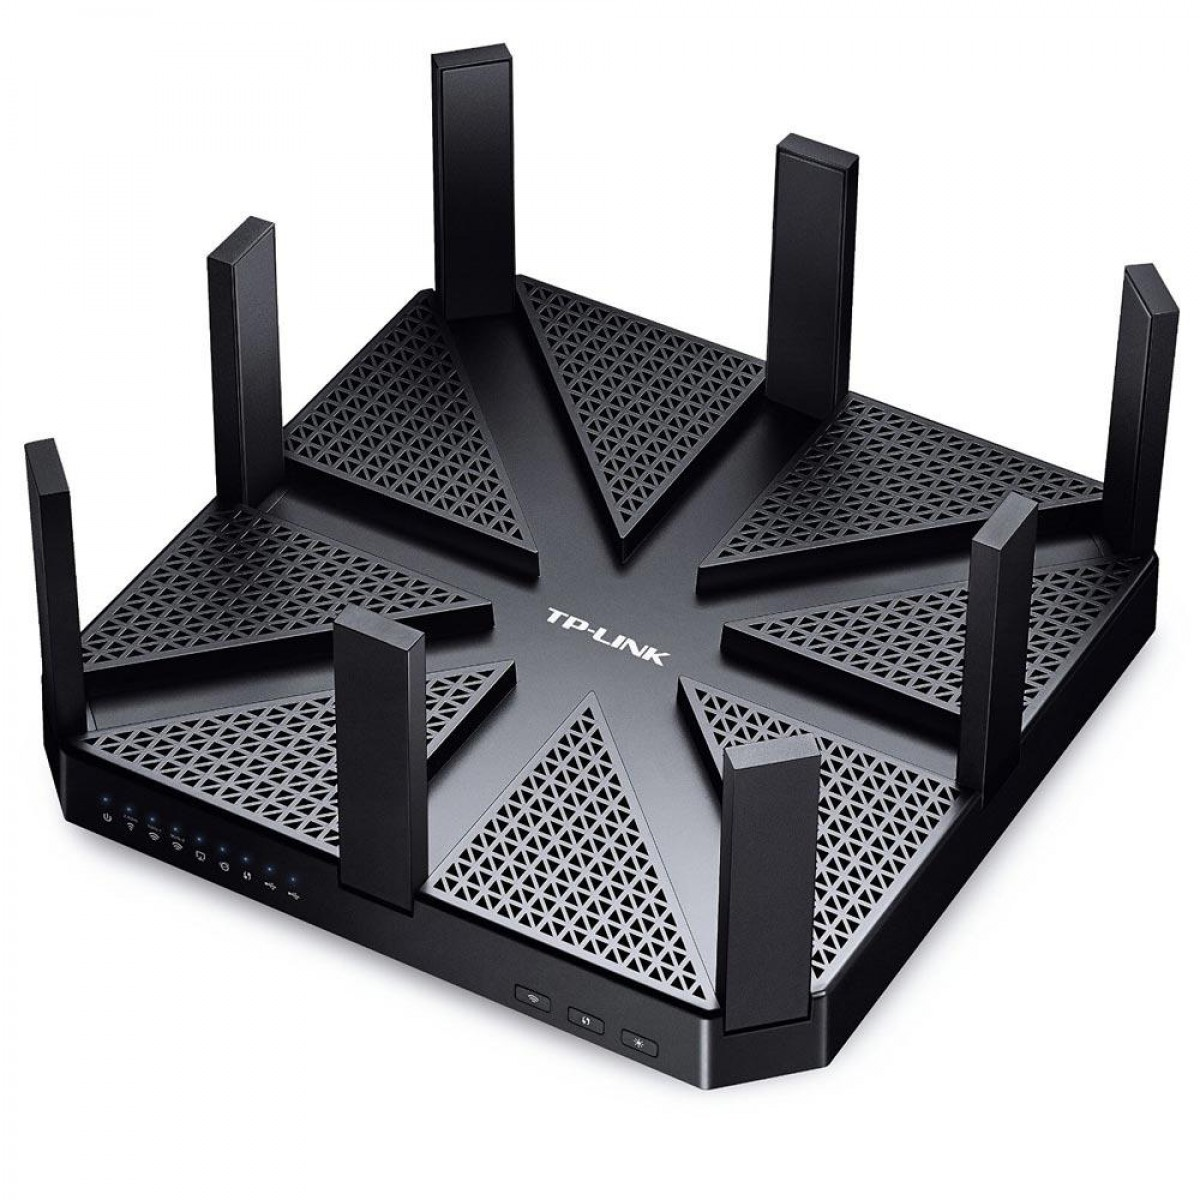 Roteador Wireless TP-LINK Archer C5400, Tri-Band Wireless